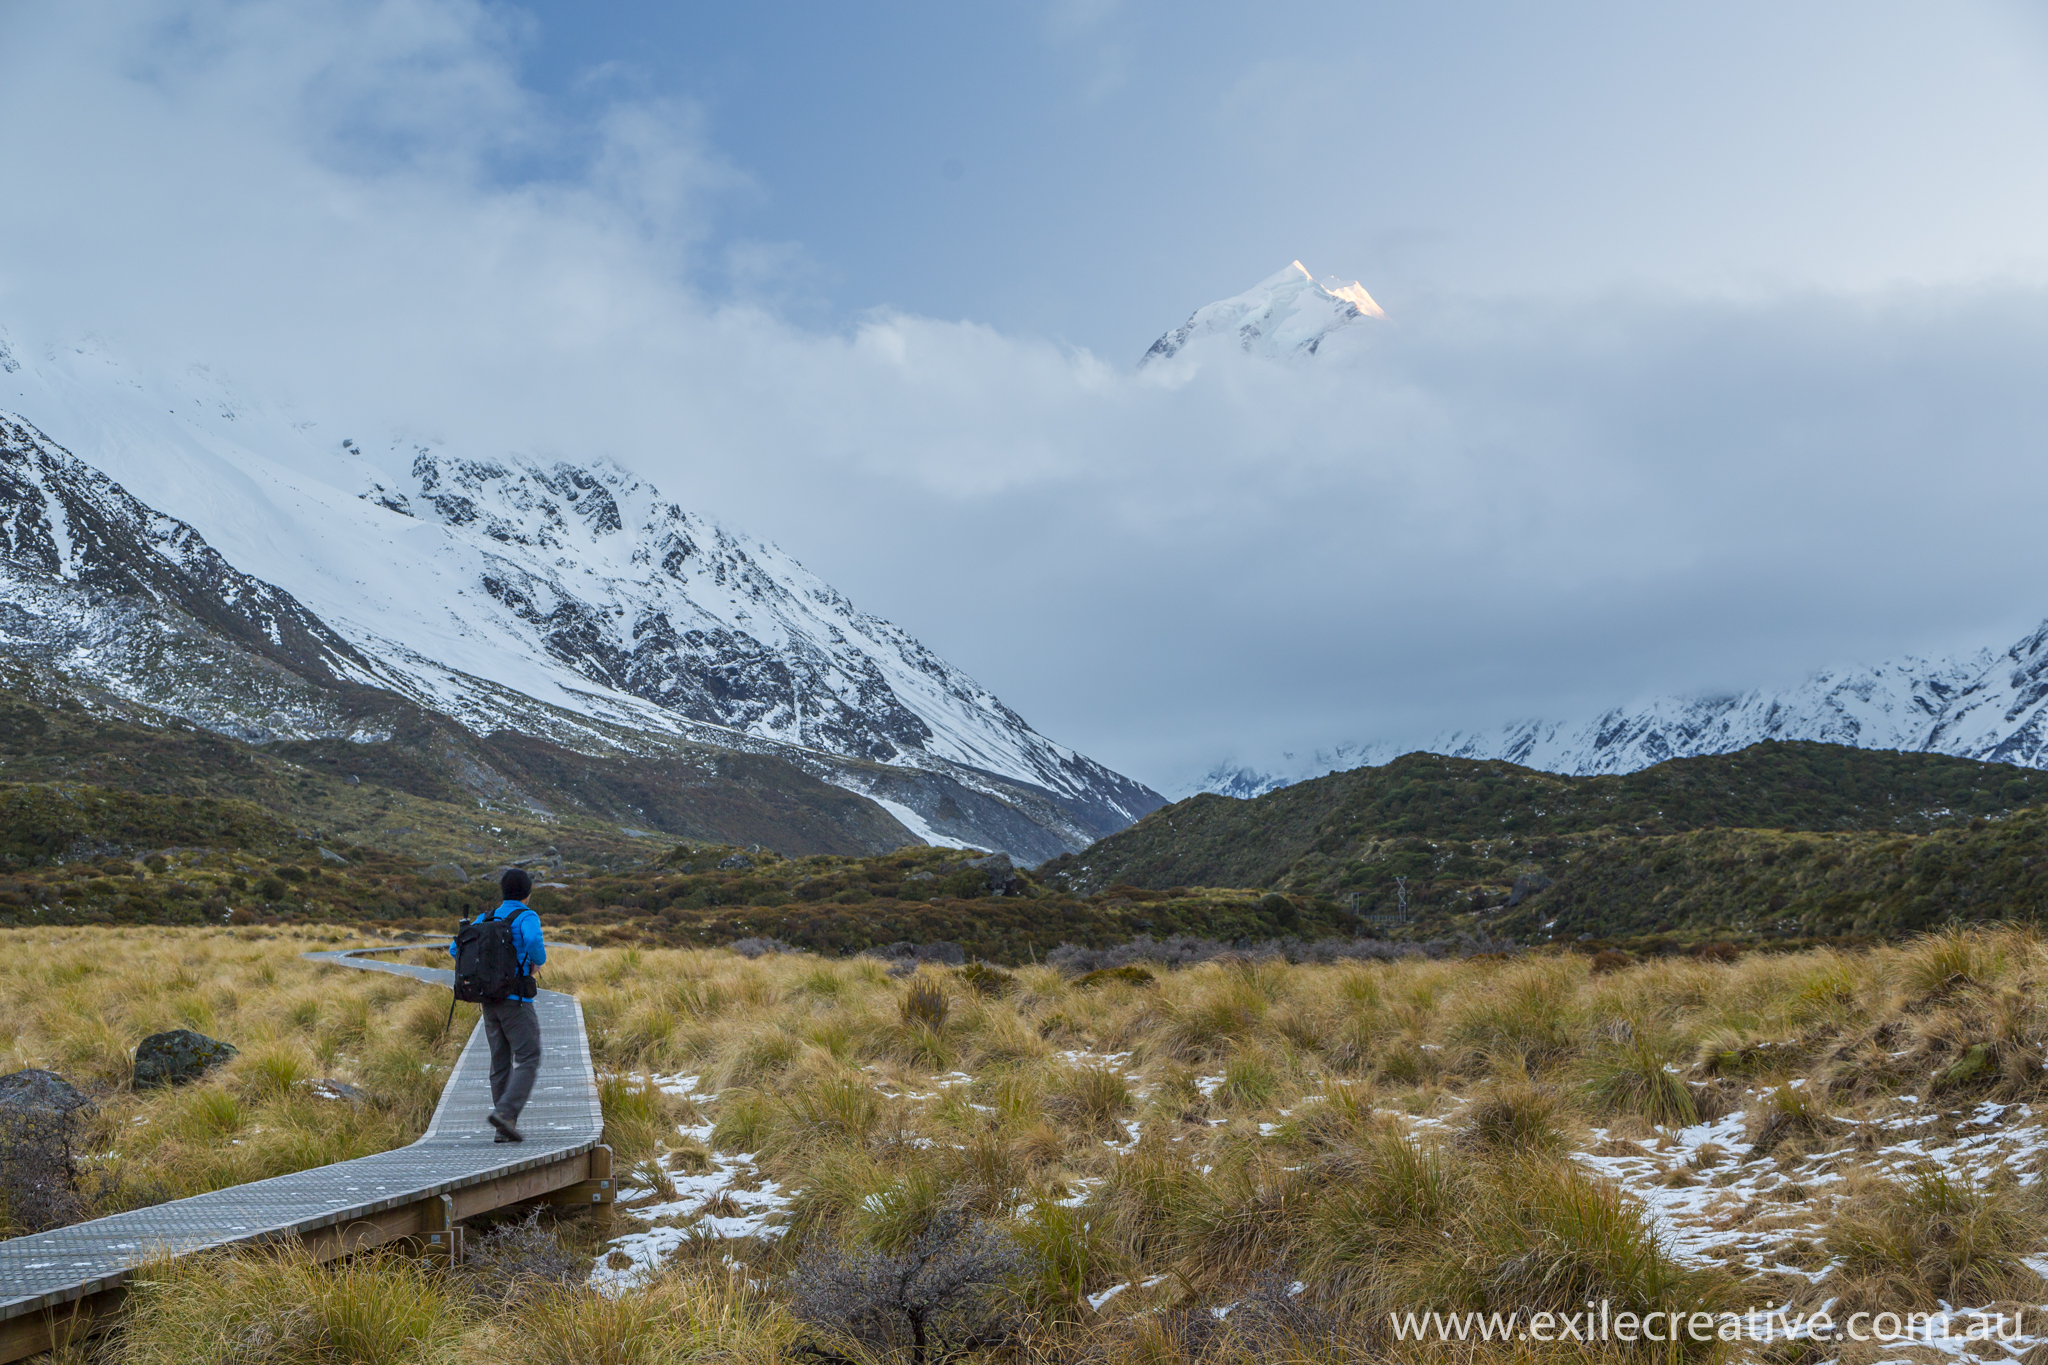 Mt Cook peeks out from behind the cloud.  Canon 5Dmiii, 24-105L @ 50mm, ISO400, f/5.6, 1/15s with 0.6 Soft GND